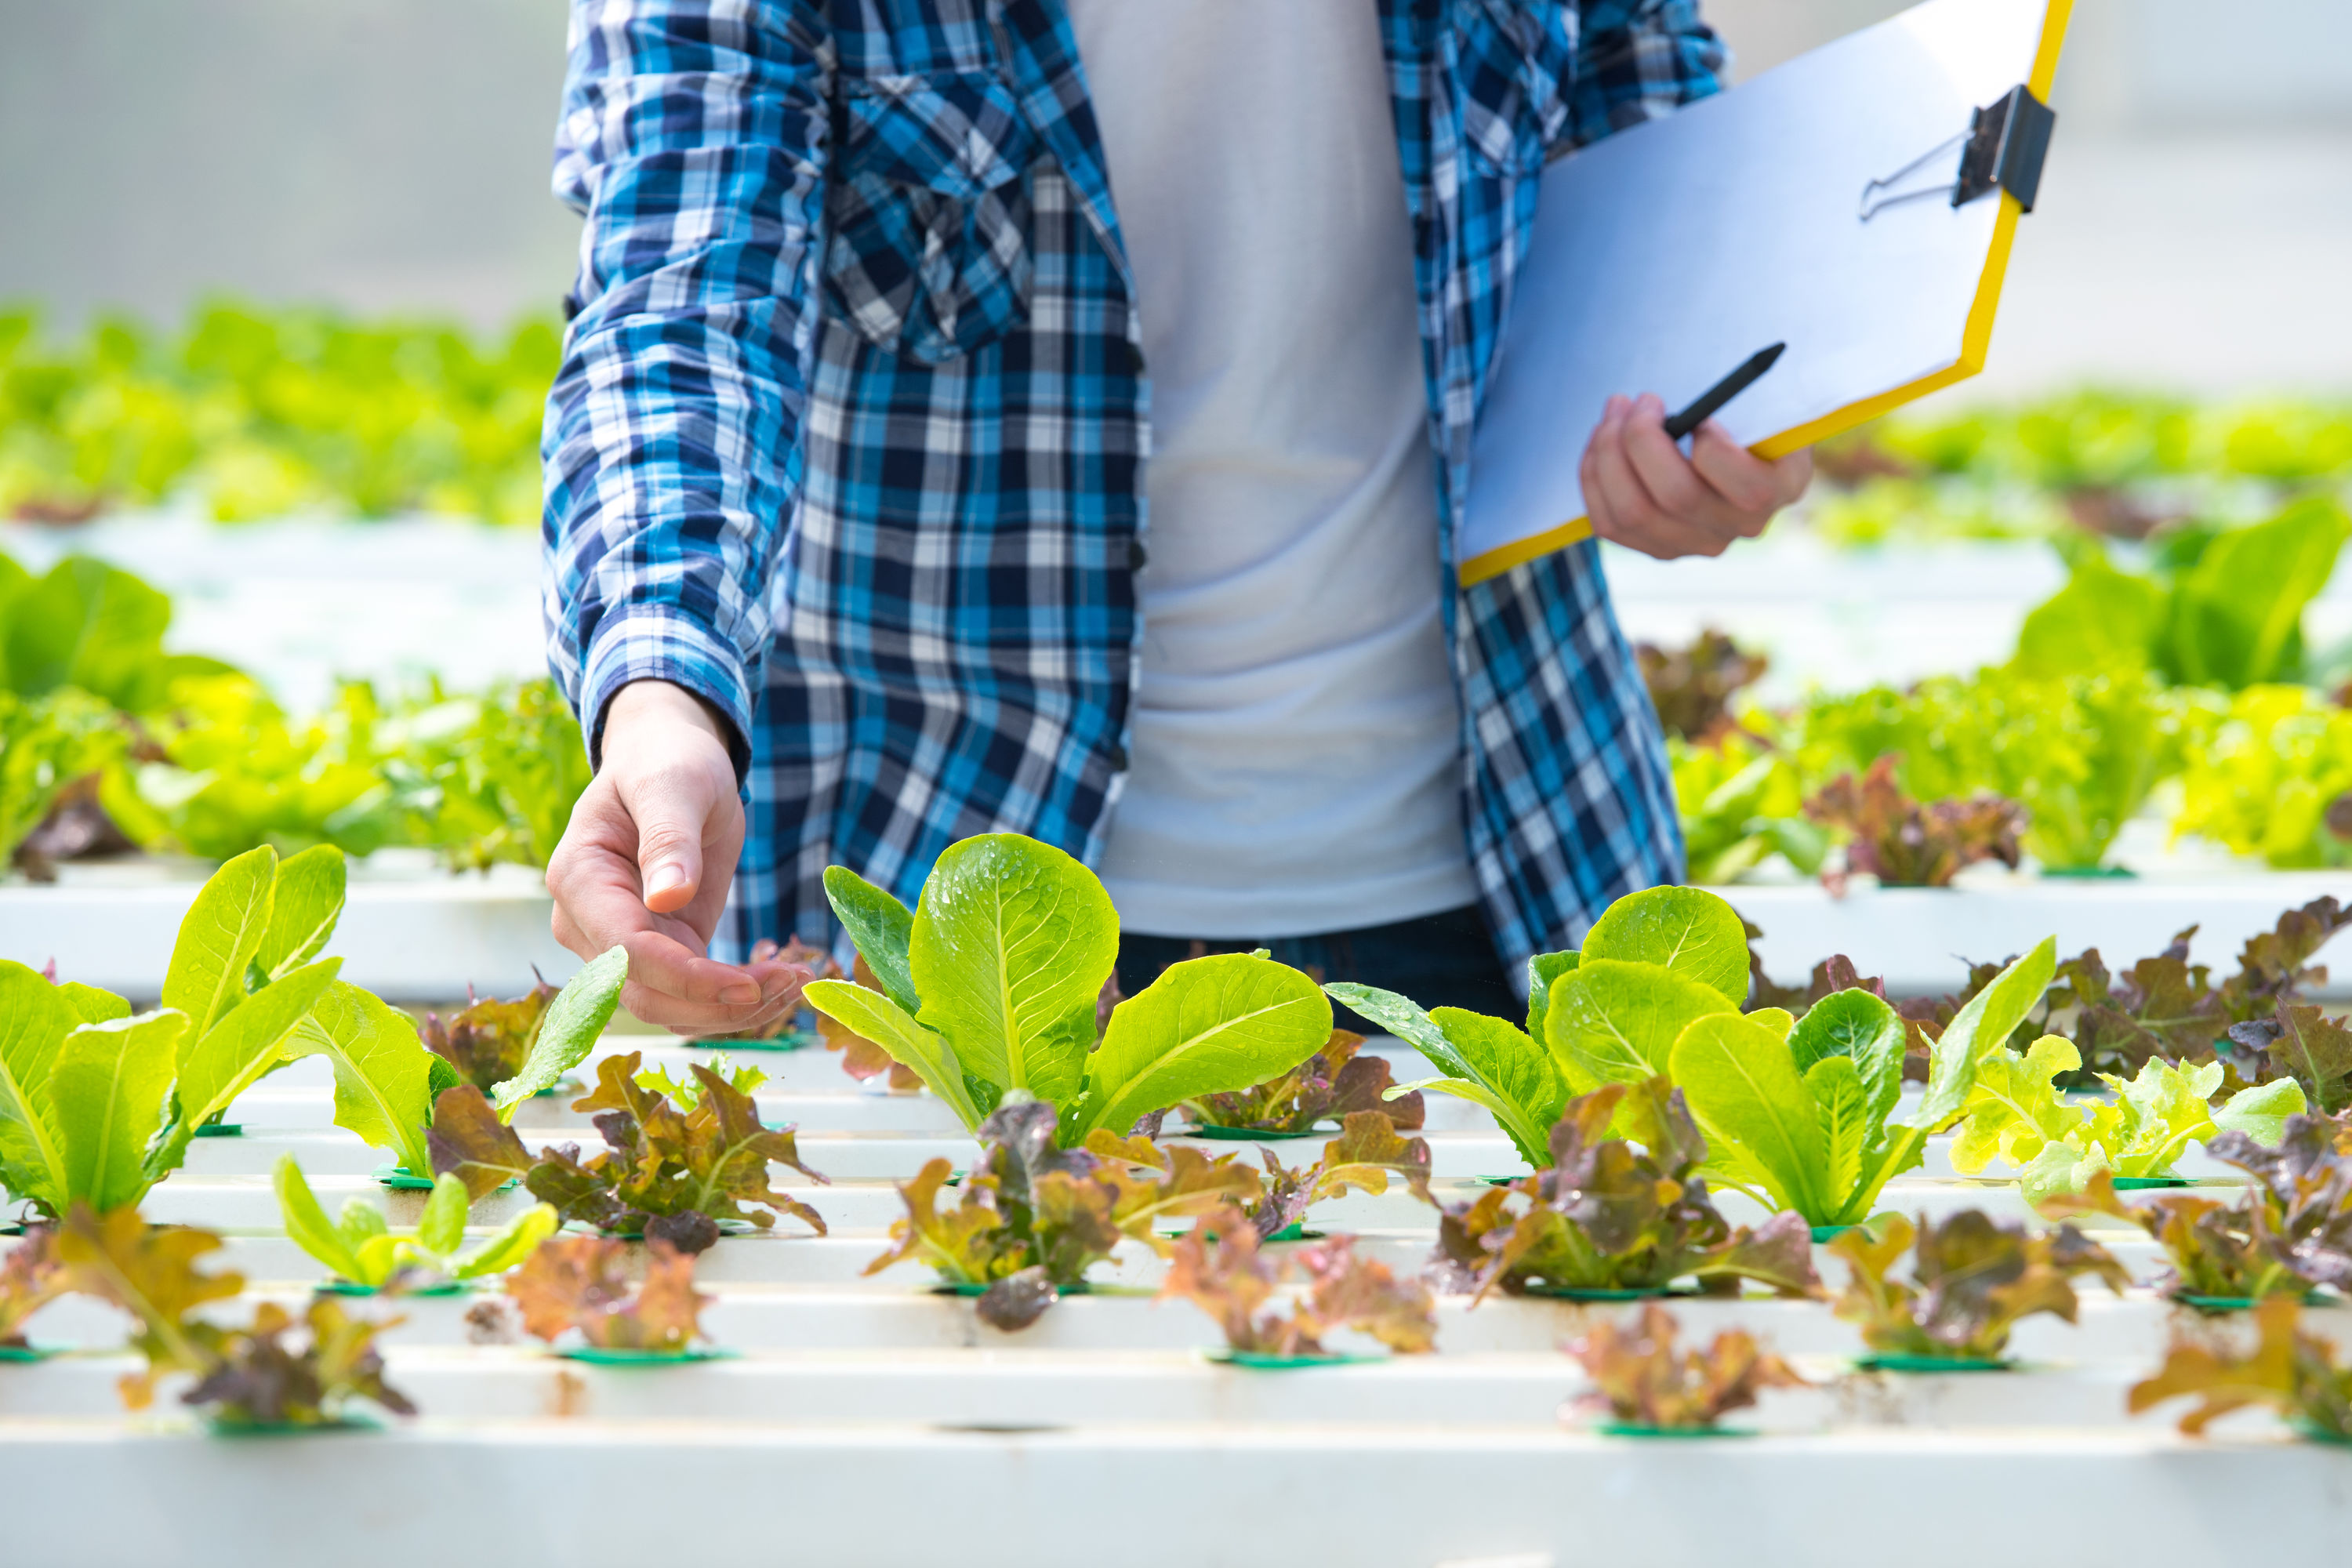 Inspecting growing plants in a hydroponic setup